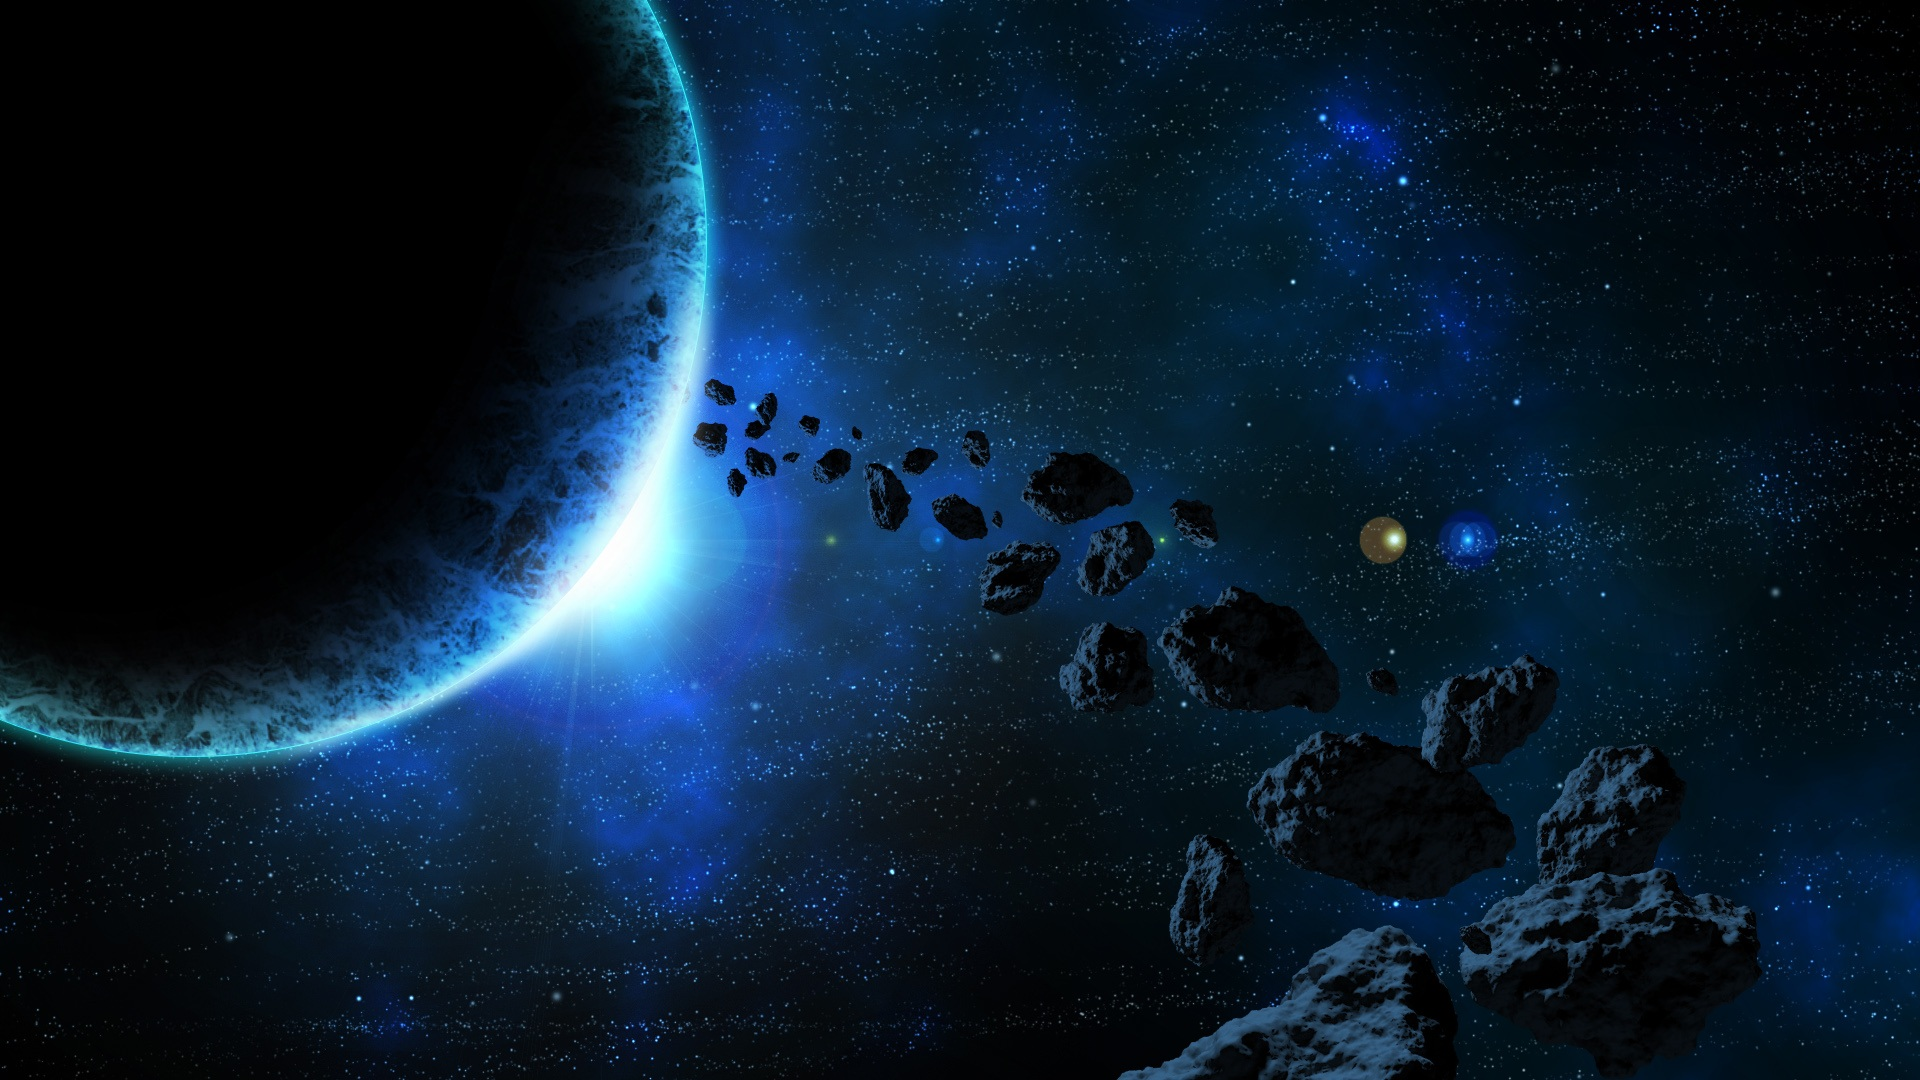 space asteroids planet